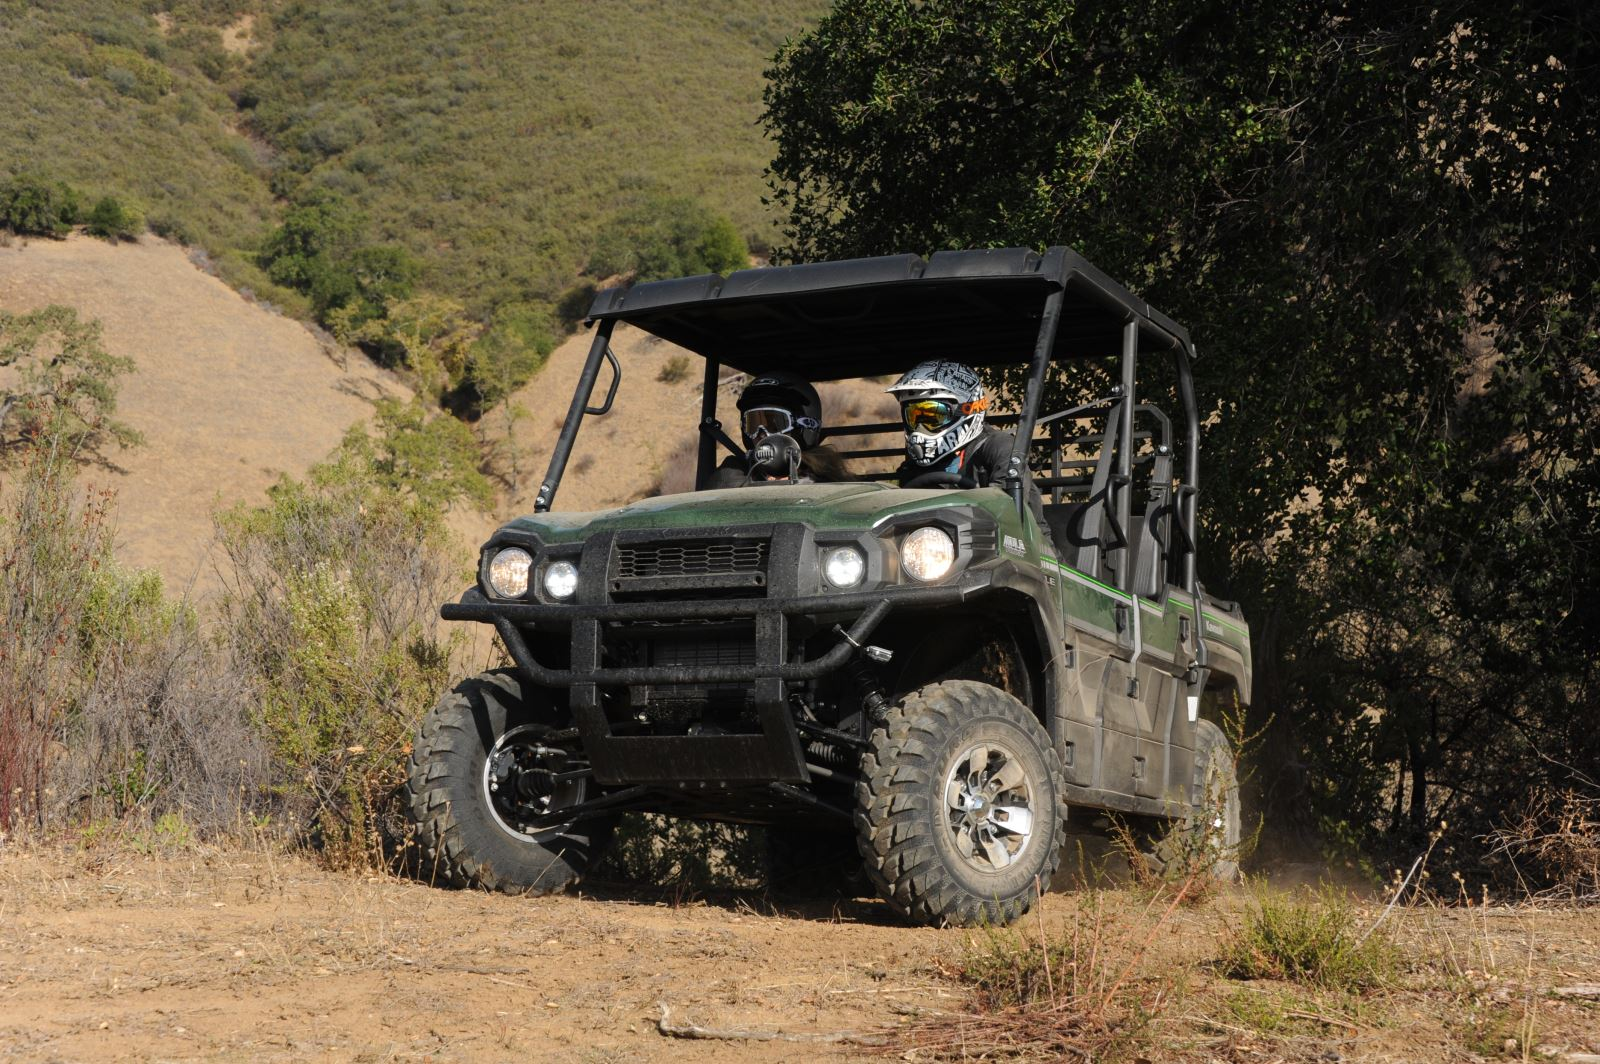 Kawasaki Mule Pro-FXT: Mixing Play With Work | Dirt Toys